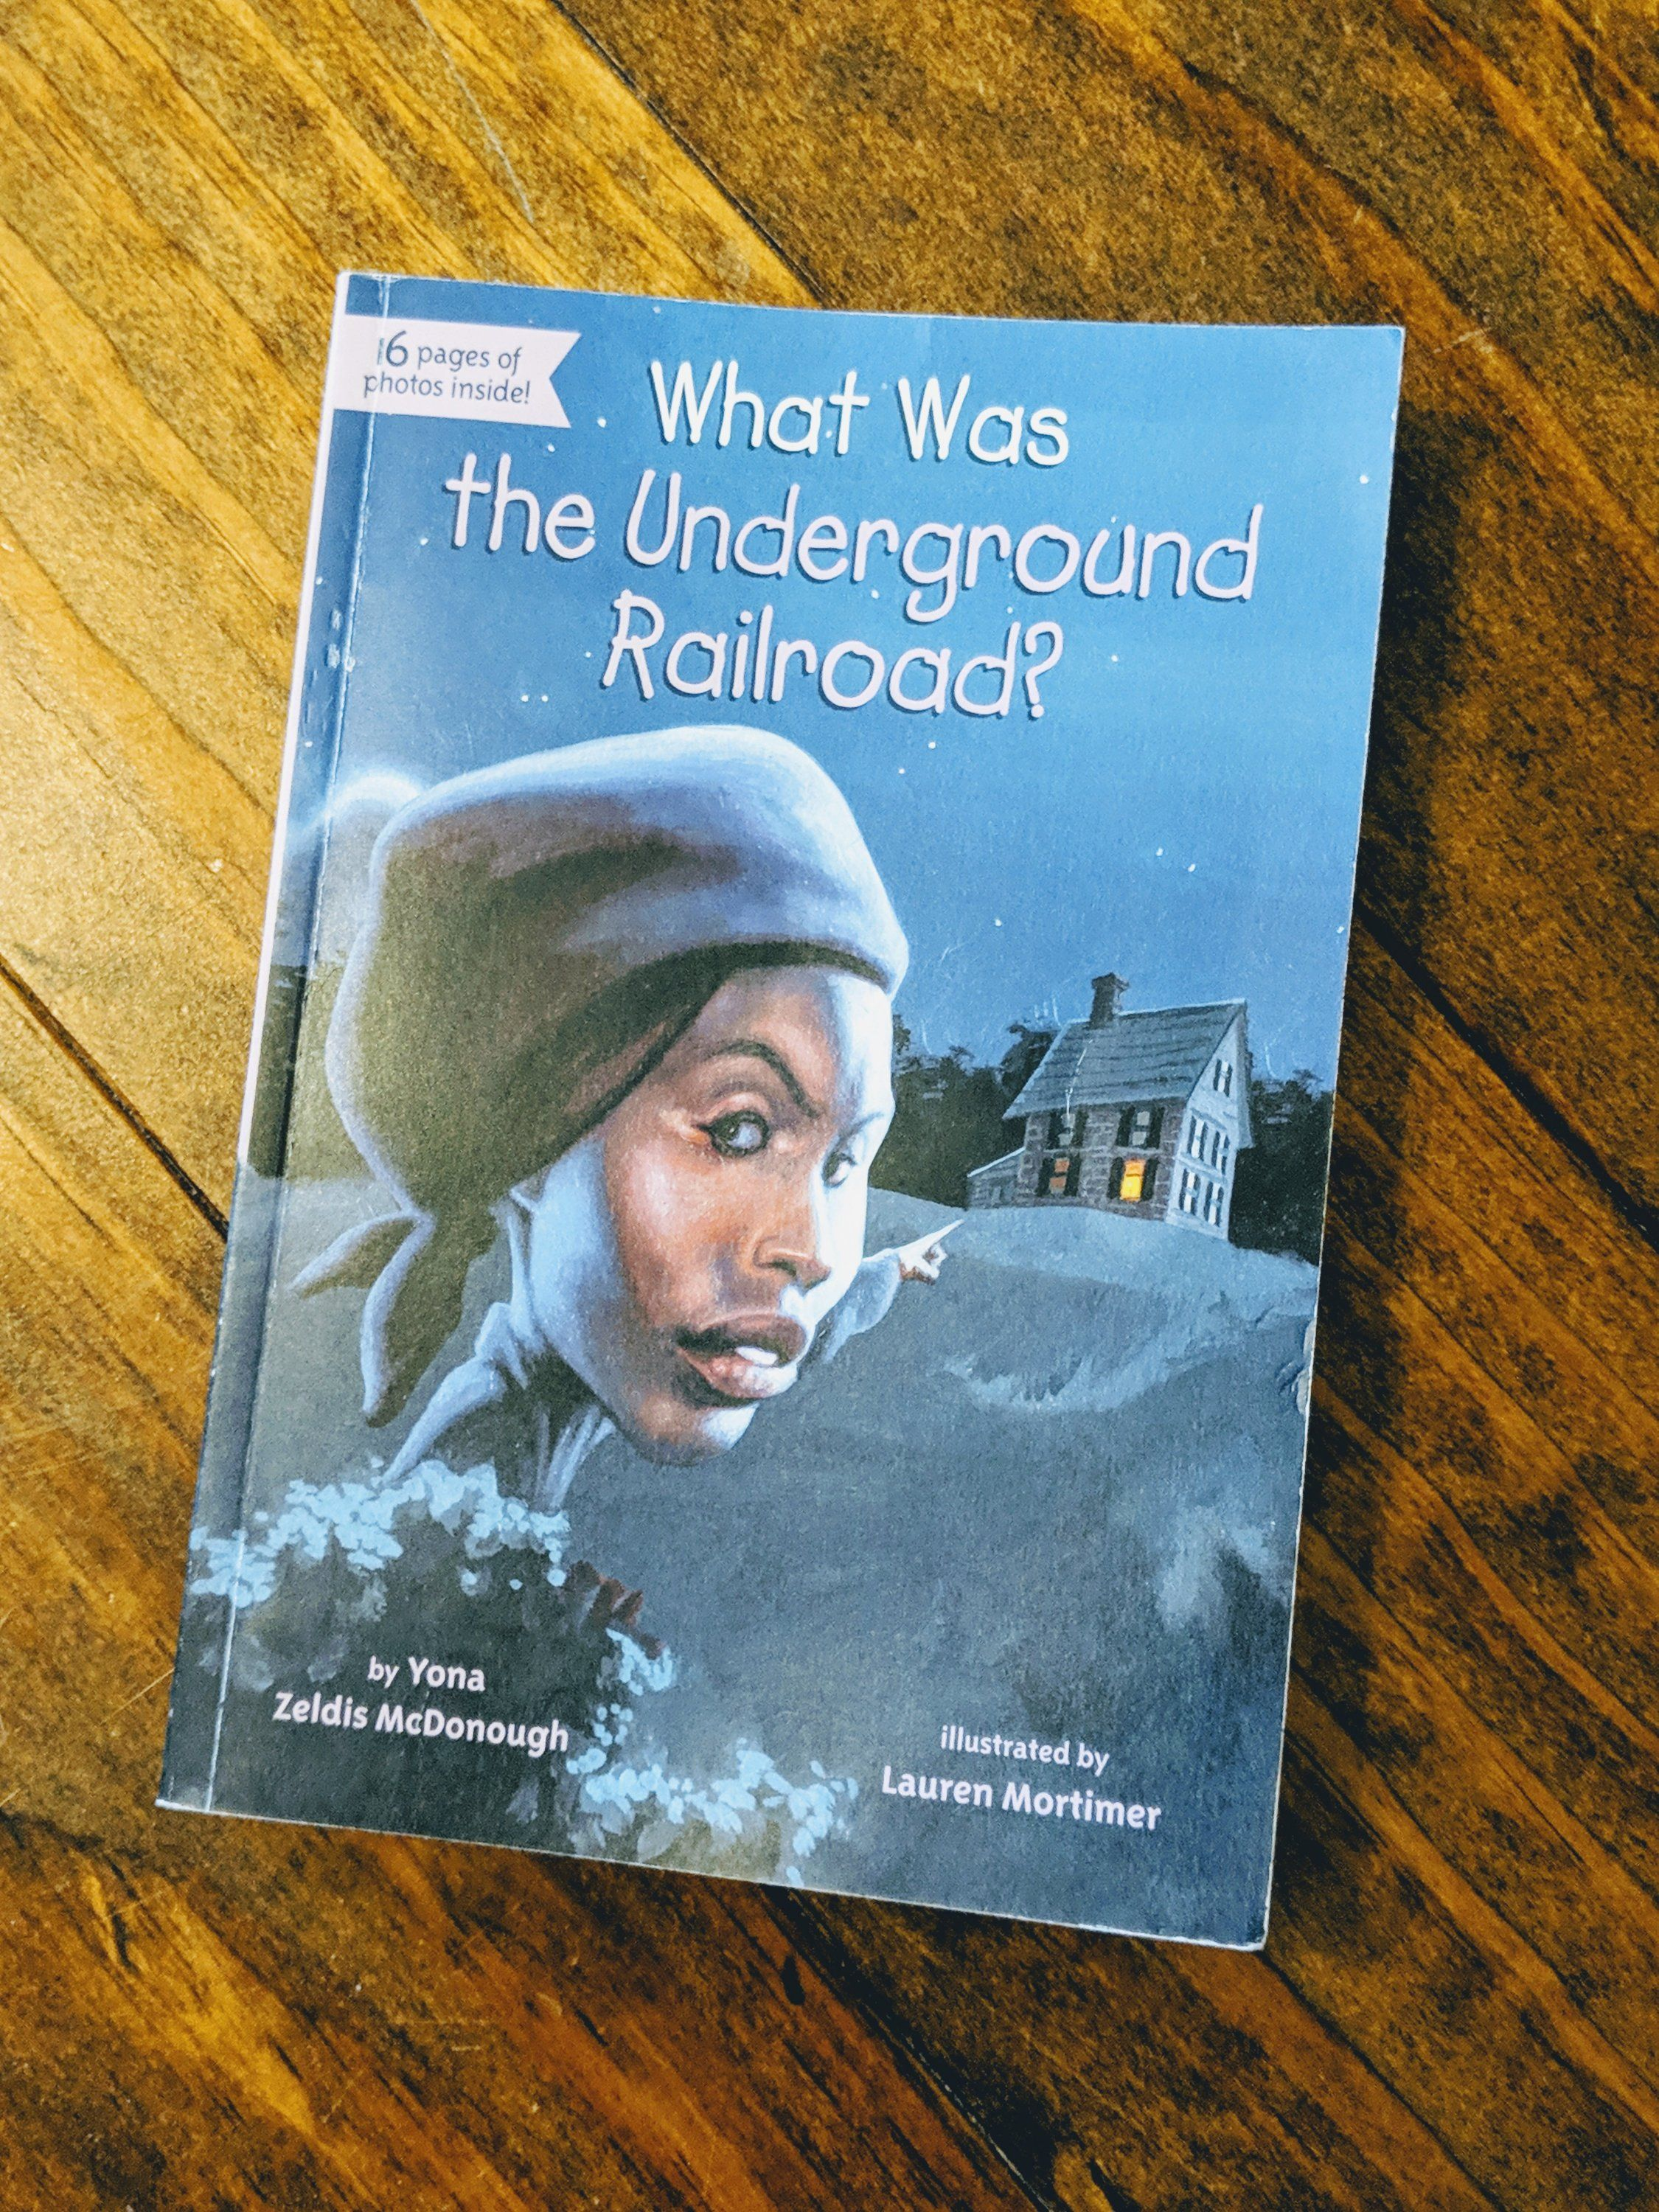 The Underground Railroad Unit Study With Images